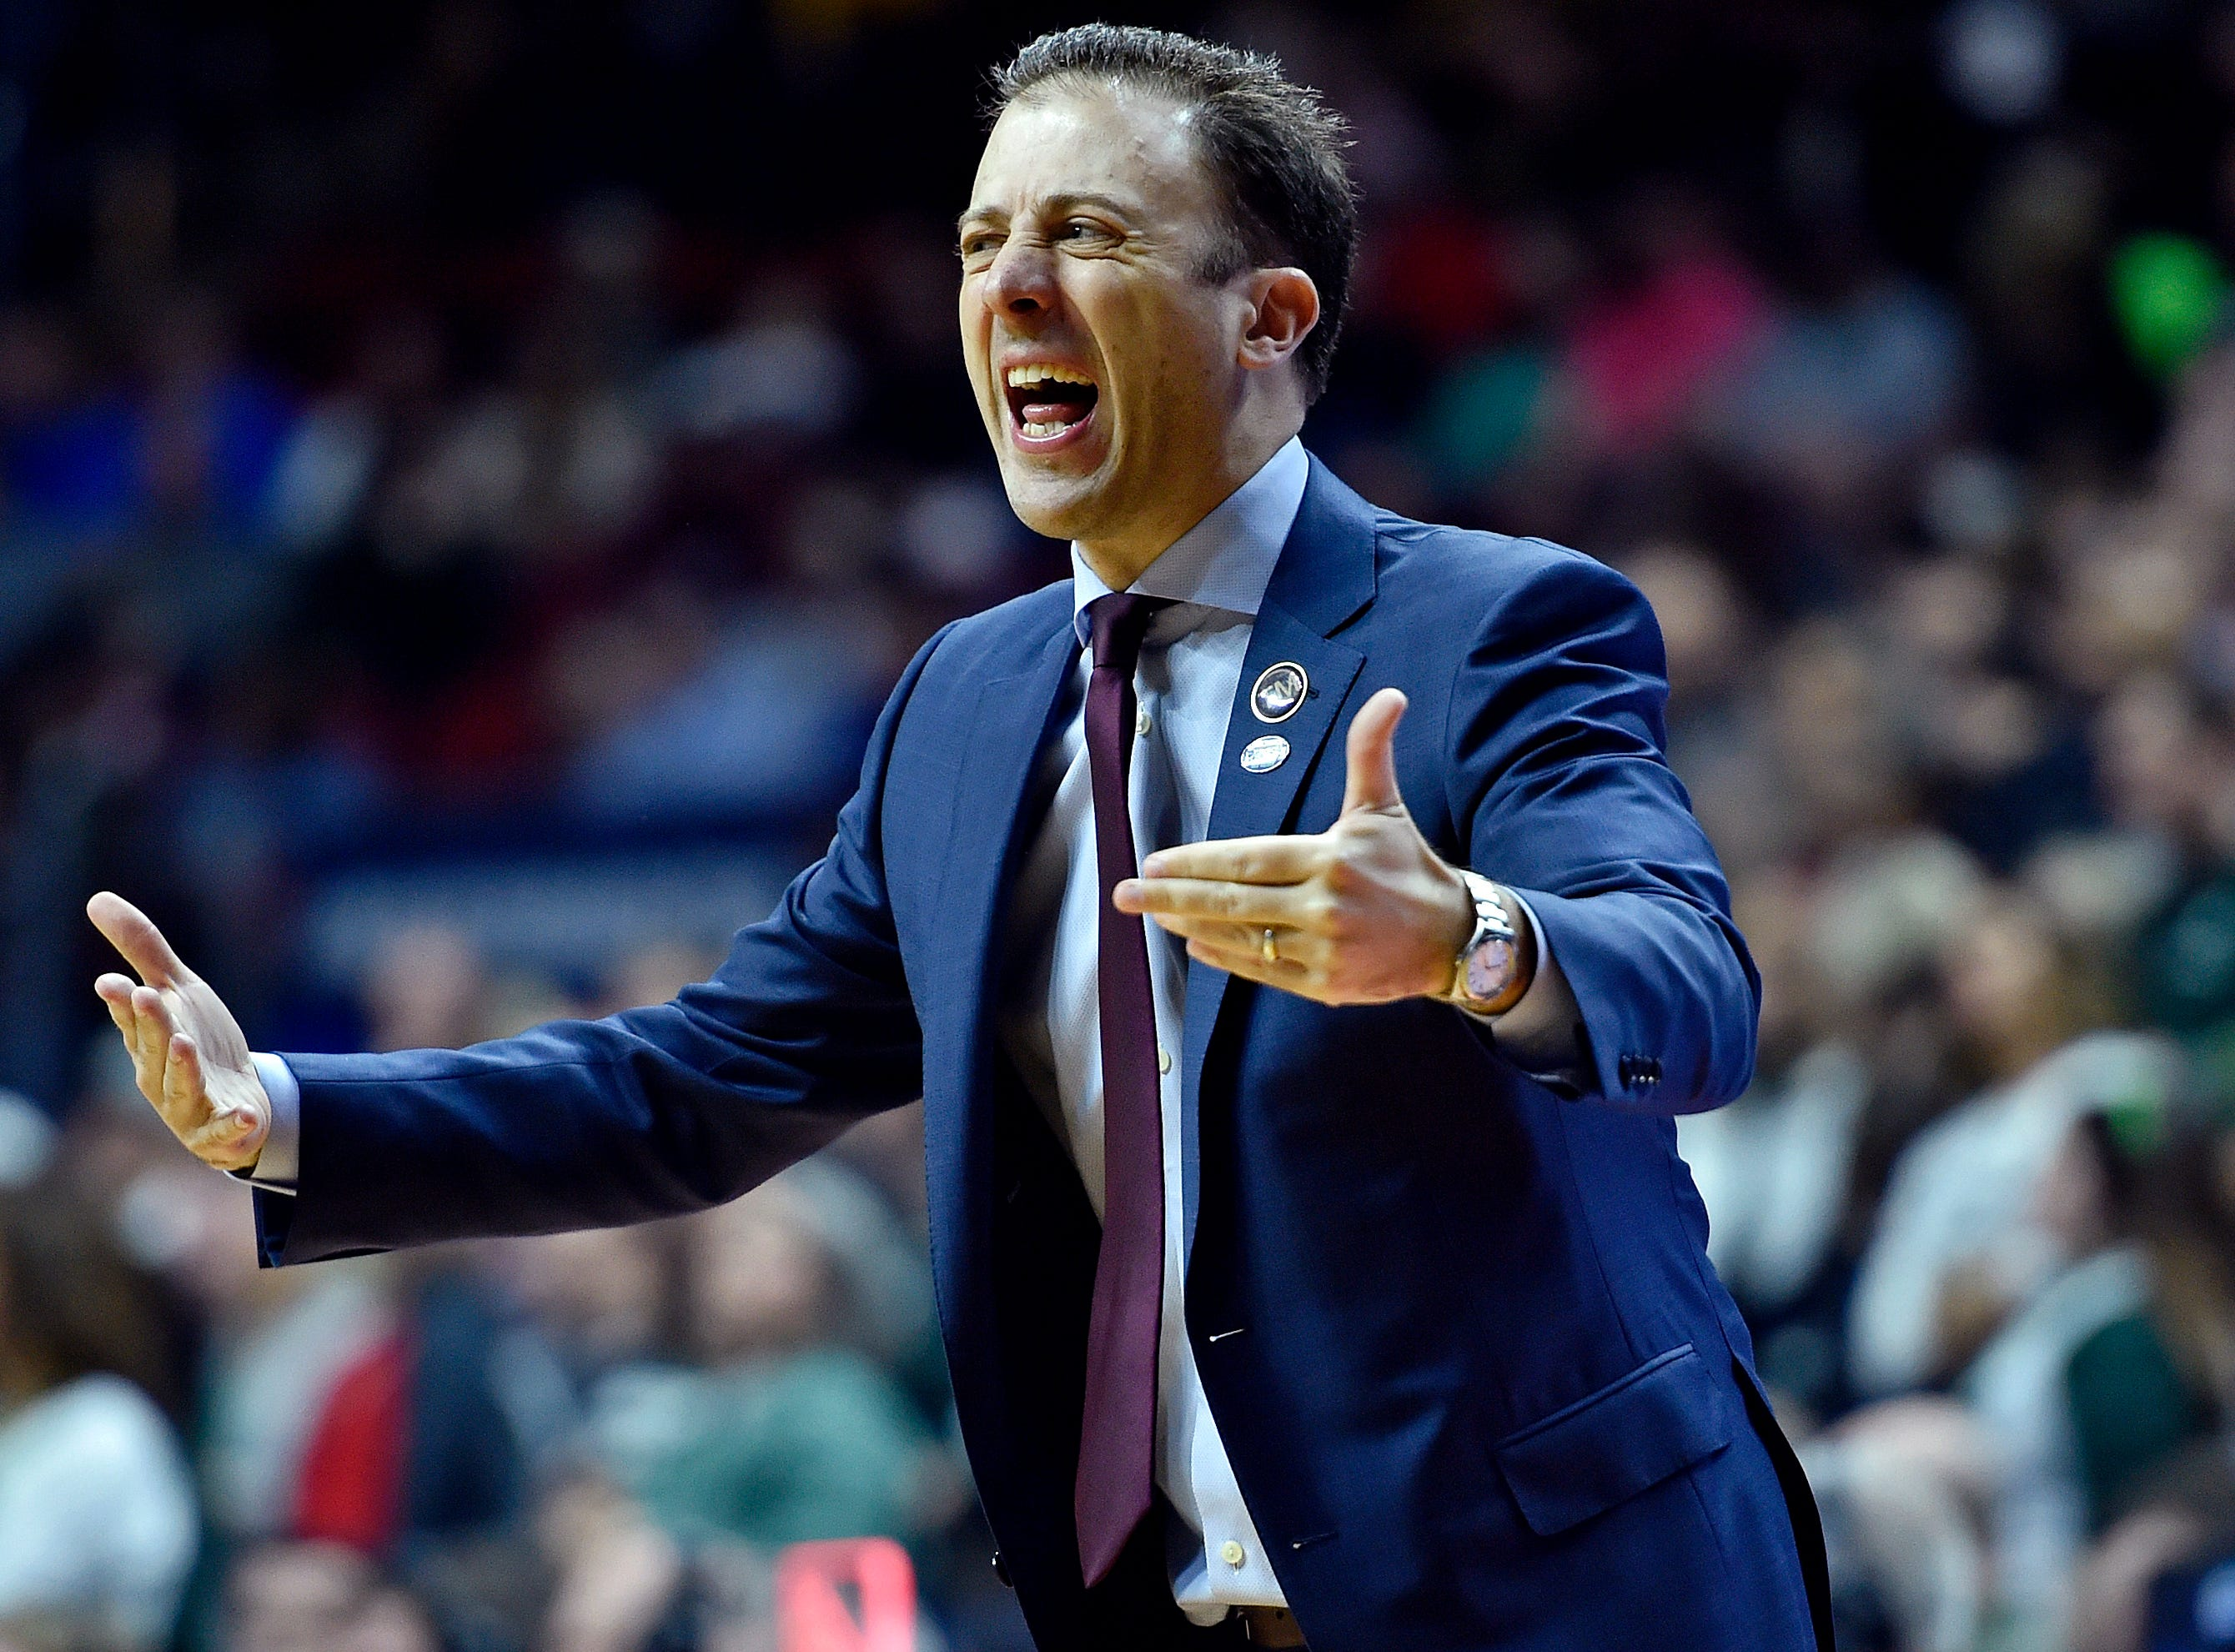 Mar 23, 2019; Des Moines, IA, United States; Minnesota Golden Gophers head coach Richard Pitino reacts during the second half against the Michigan State Spartans in the second round of the 2019 NCAA Tournament at Wells Fargo Arena. Mandatory Credit: Jeffrey Becker-USA TODAY Sports